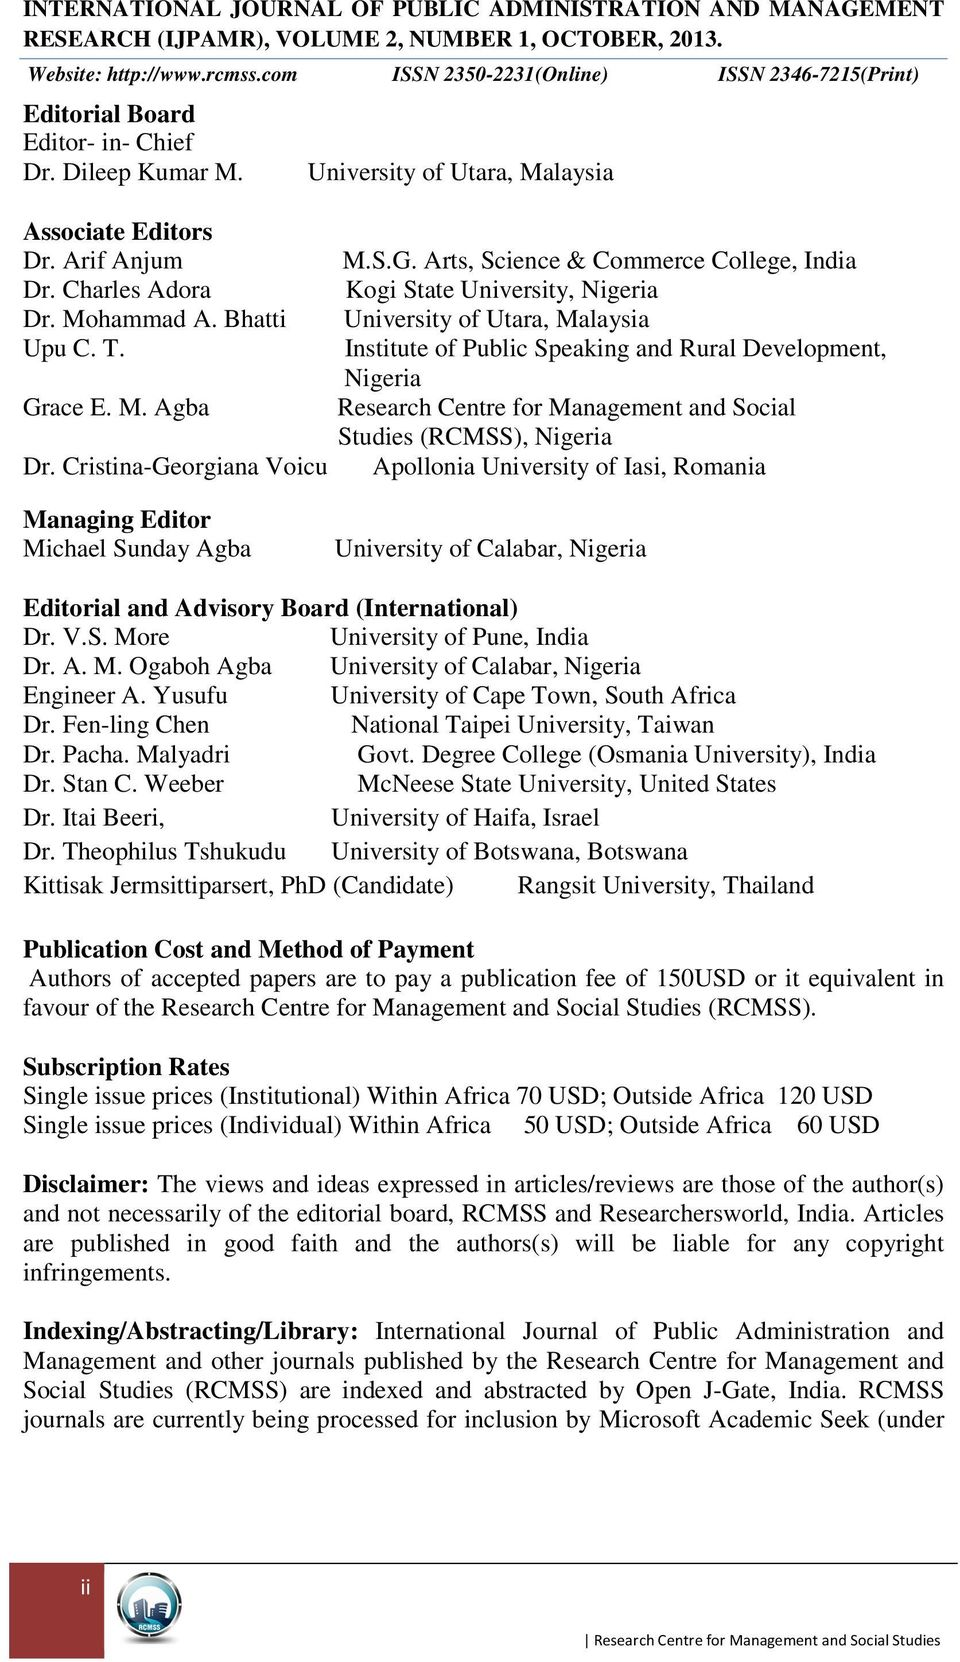 IJPAMR) INTERNATIONAL JOURNAL OF PUBLIC ADMINISTRATION AND